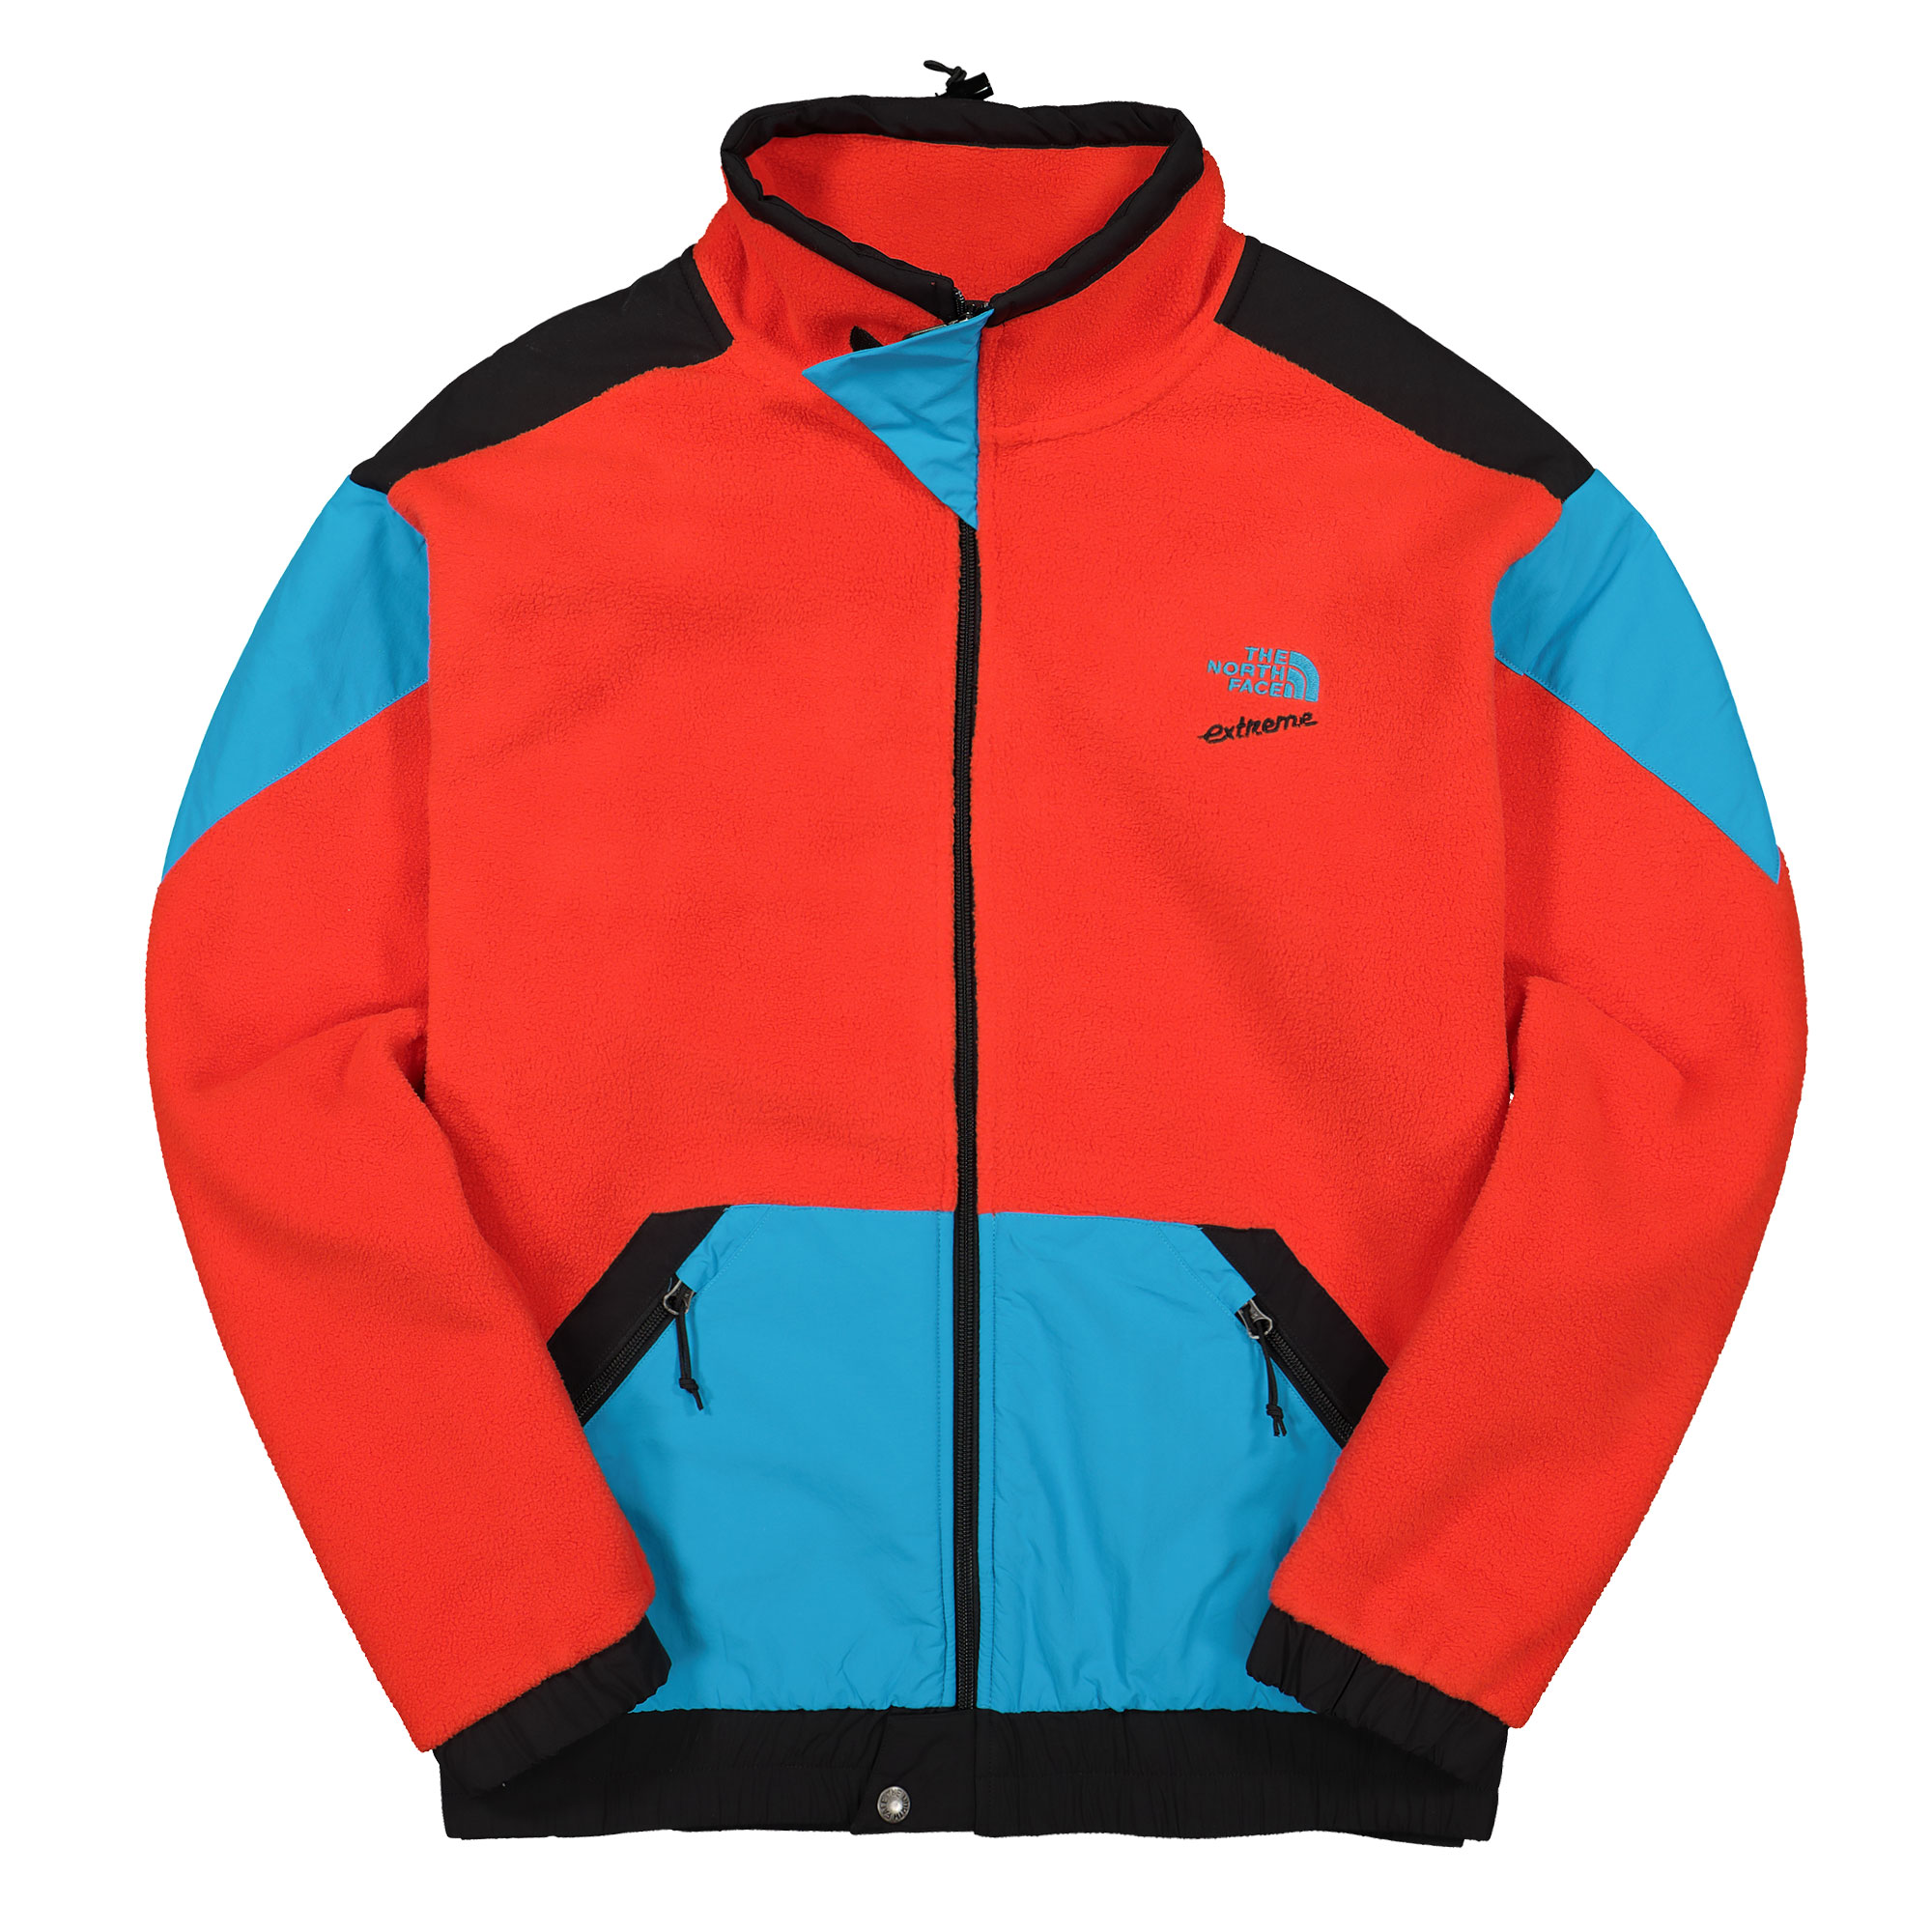 The North Face 90 Extreme Full Zip Fleece Jacket